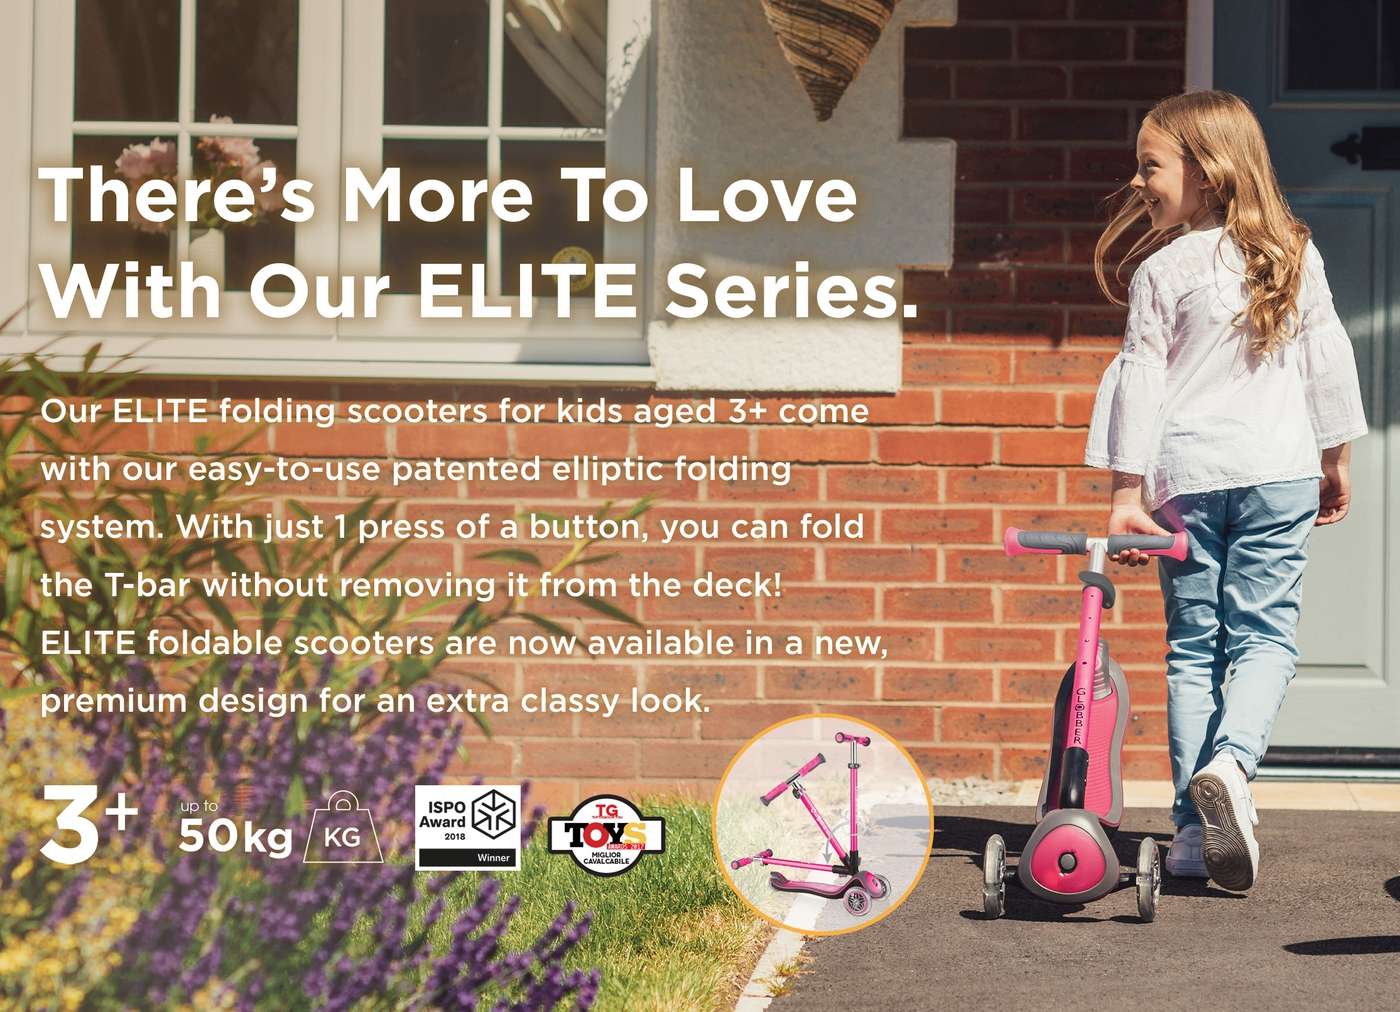 There's More To Love With Our ELITE Series.